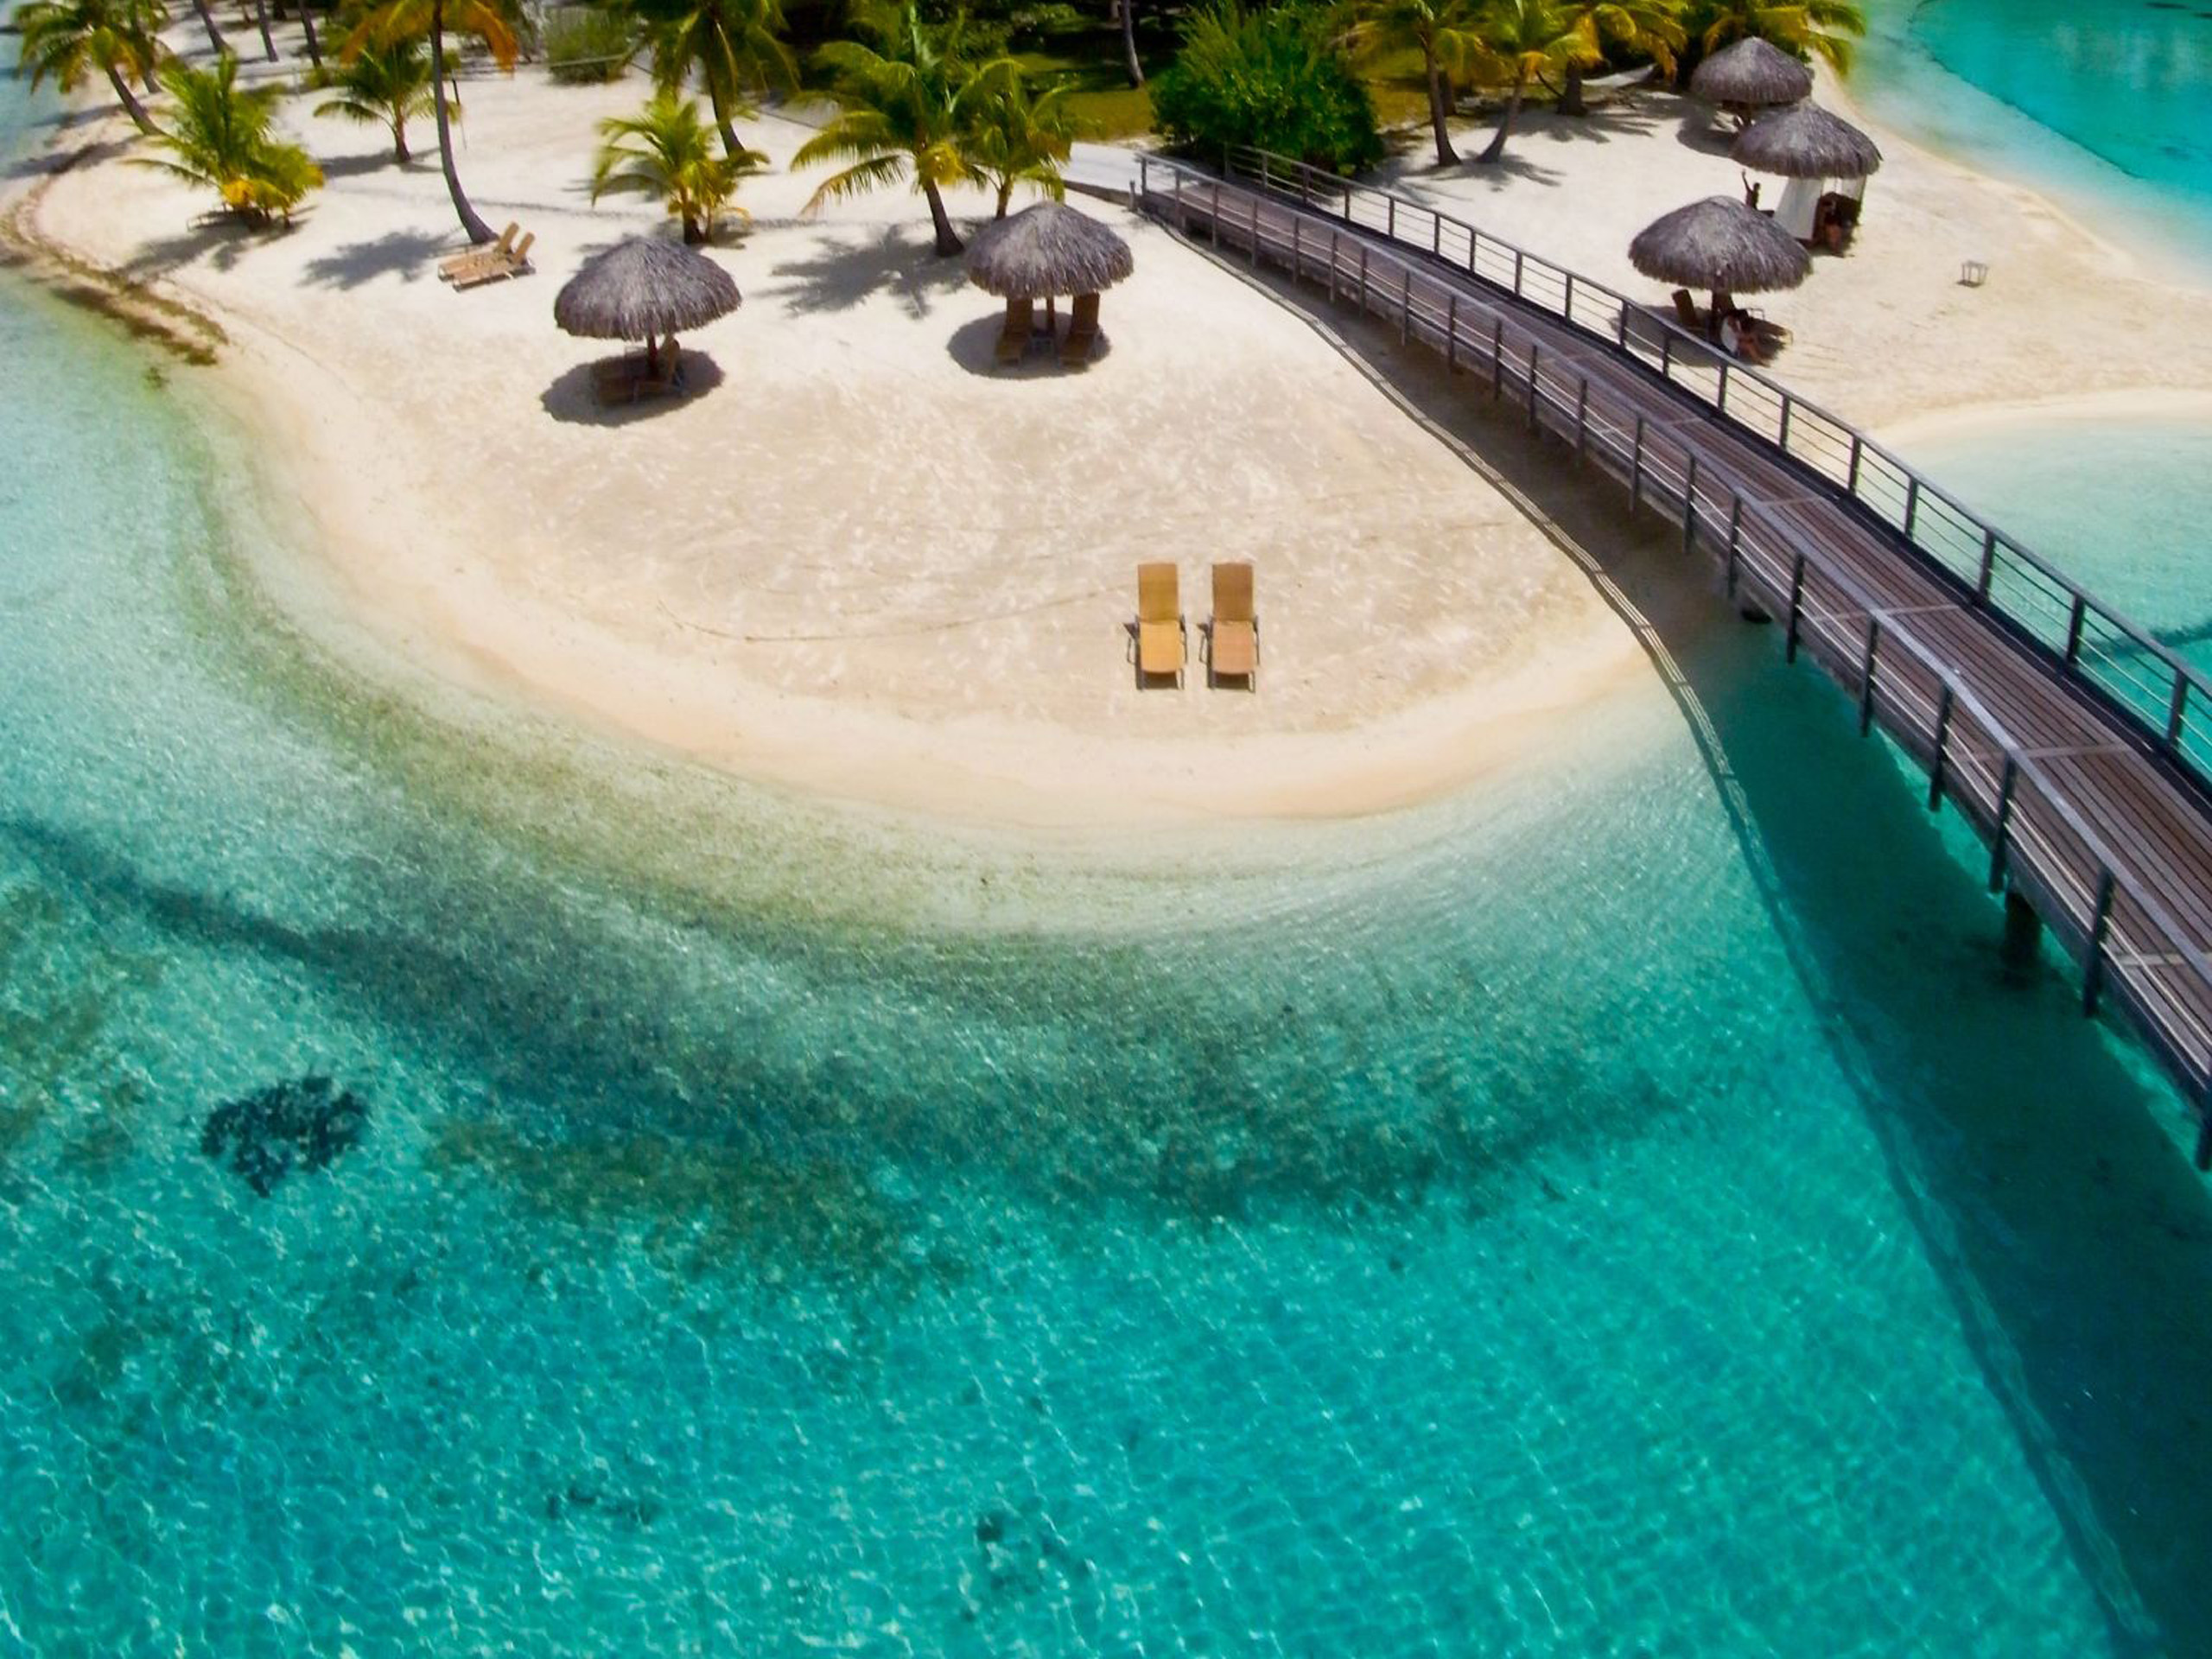 Popular Wallpaper High Resolution Bora Bora - Bora-Bora-Islands-019  2018_849178.jpg